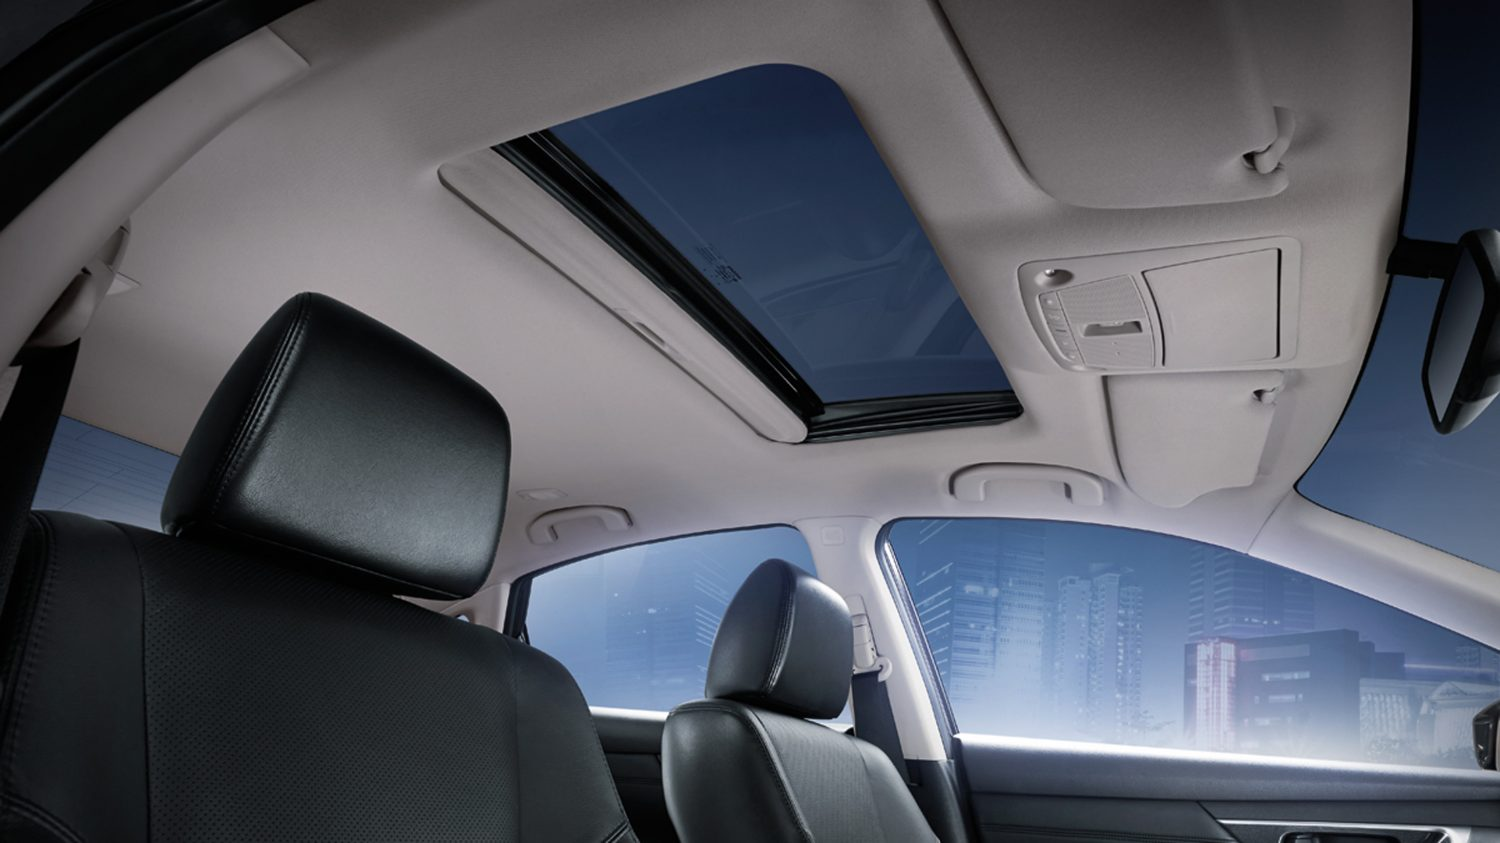 ELECTRIC ADJUSTABLE SUNROOF